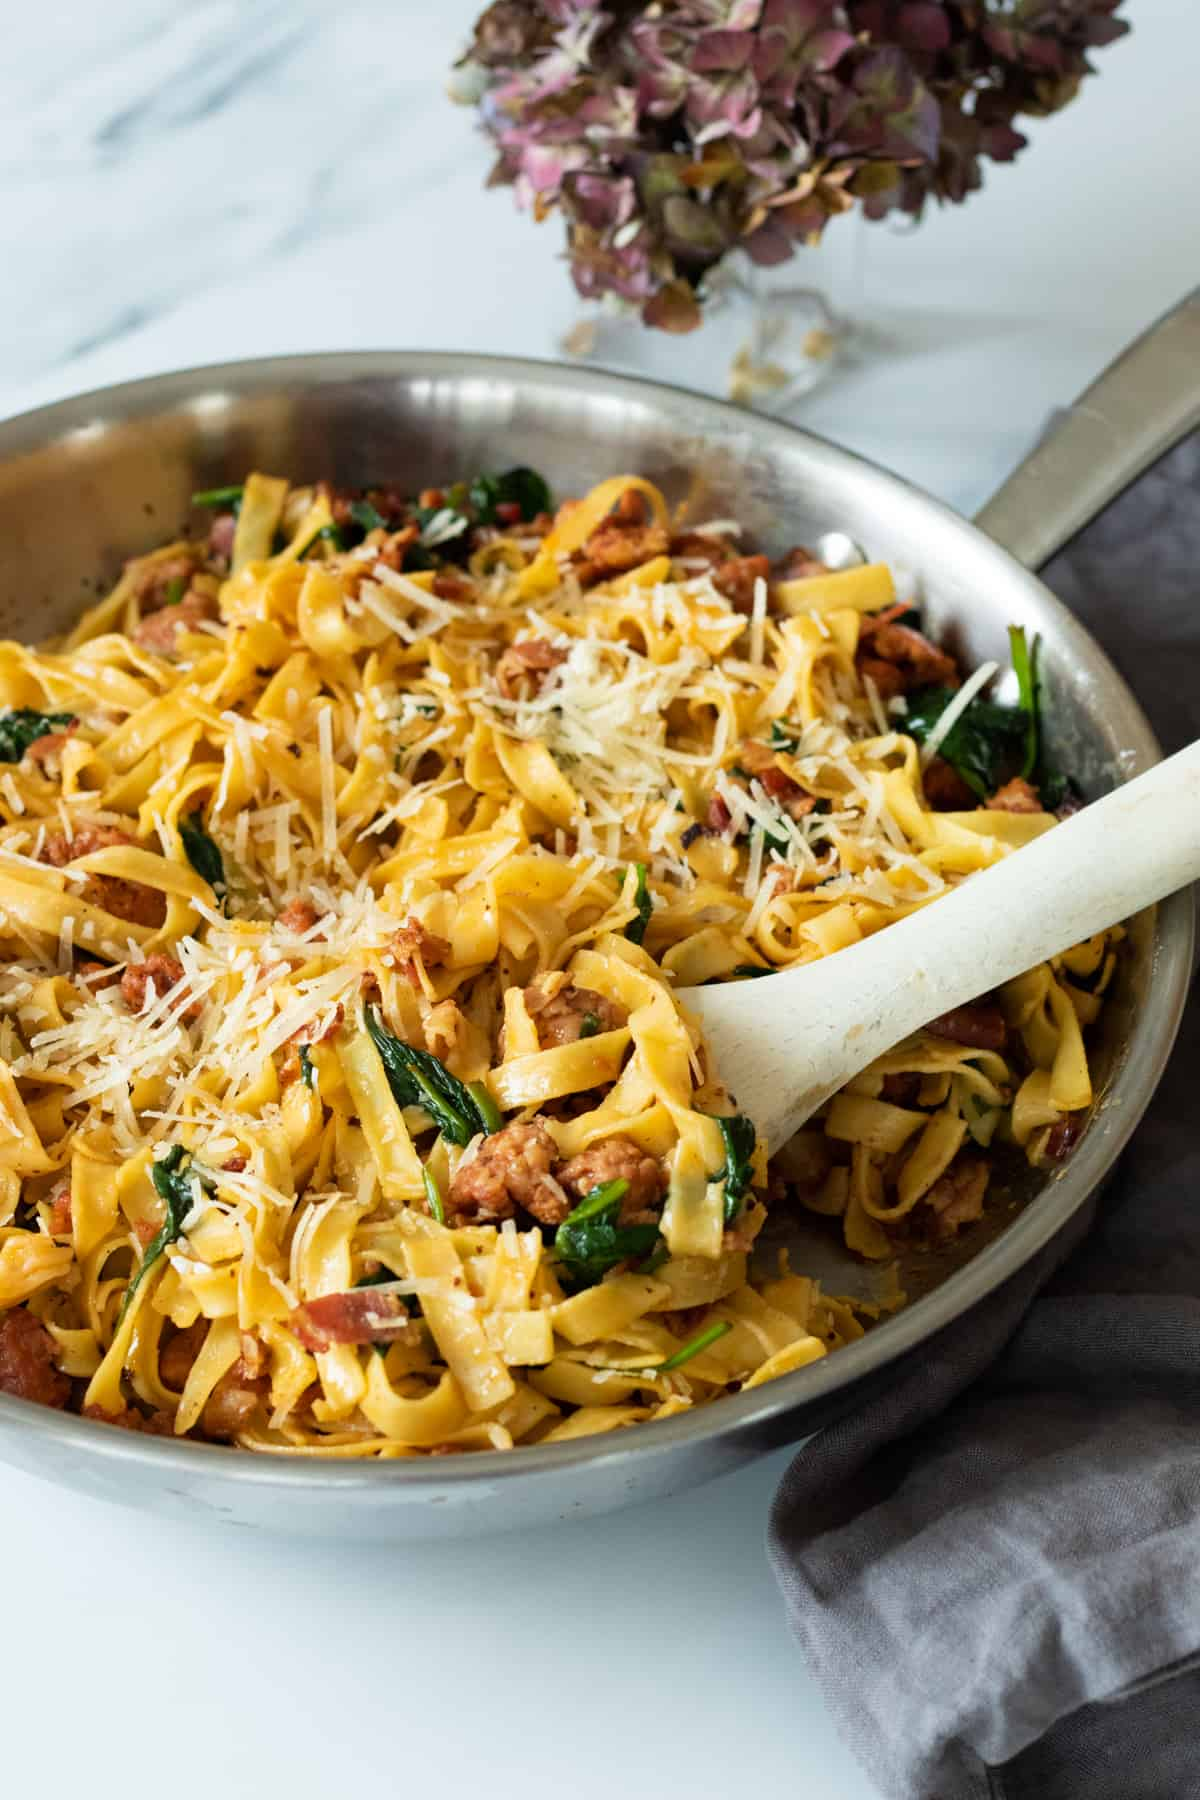 spicy sausage pasta in a pan with a wooden spoon